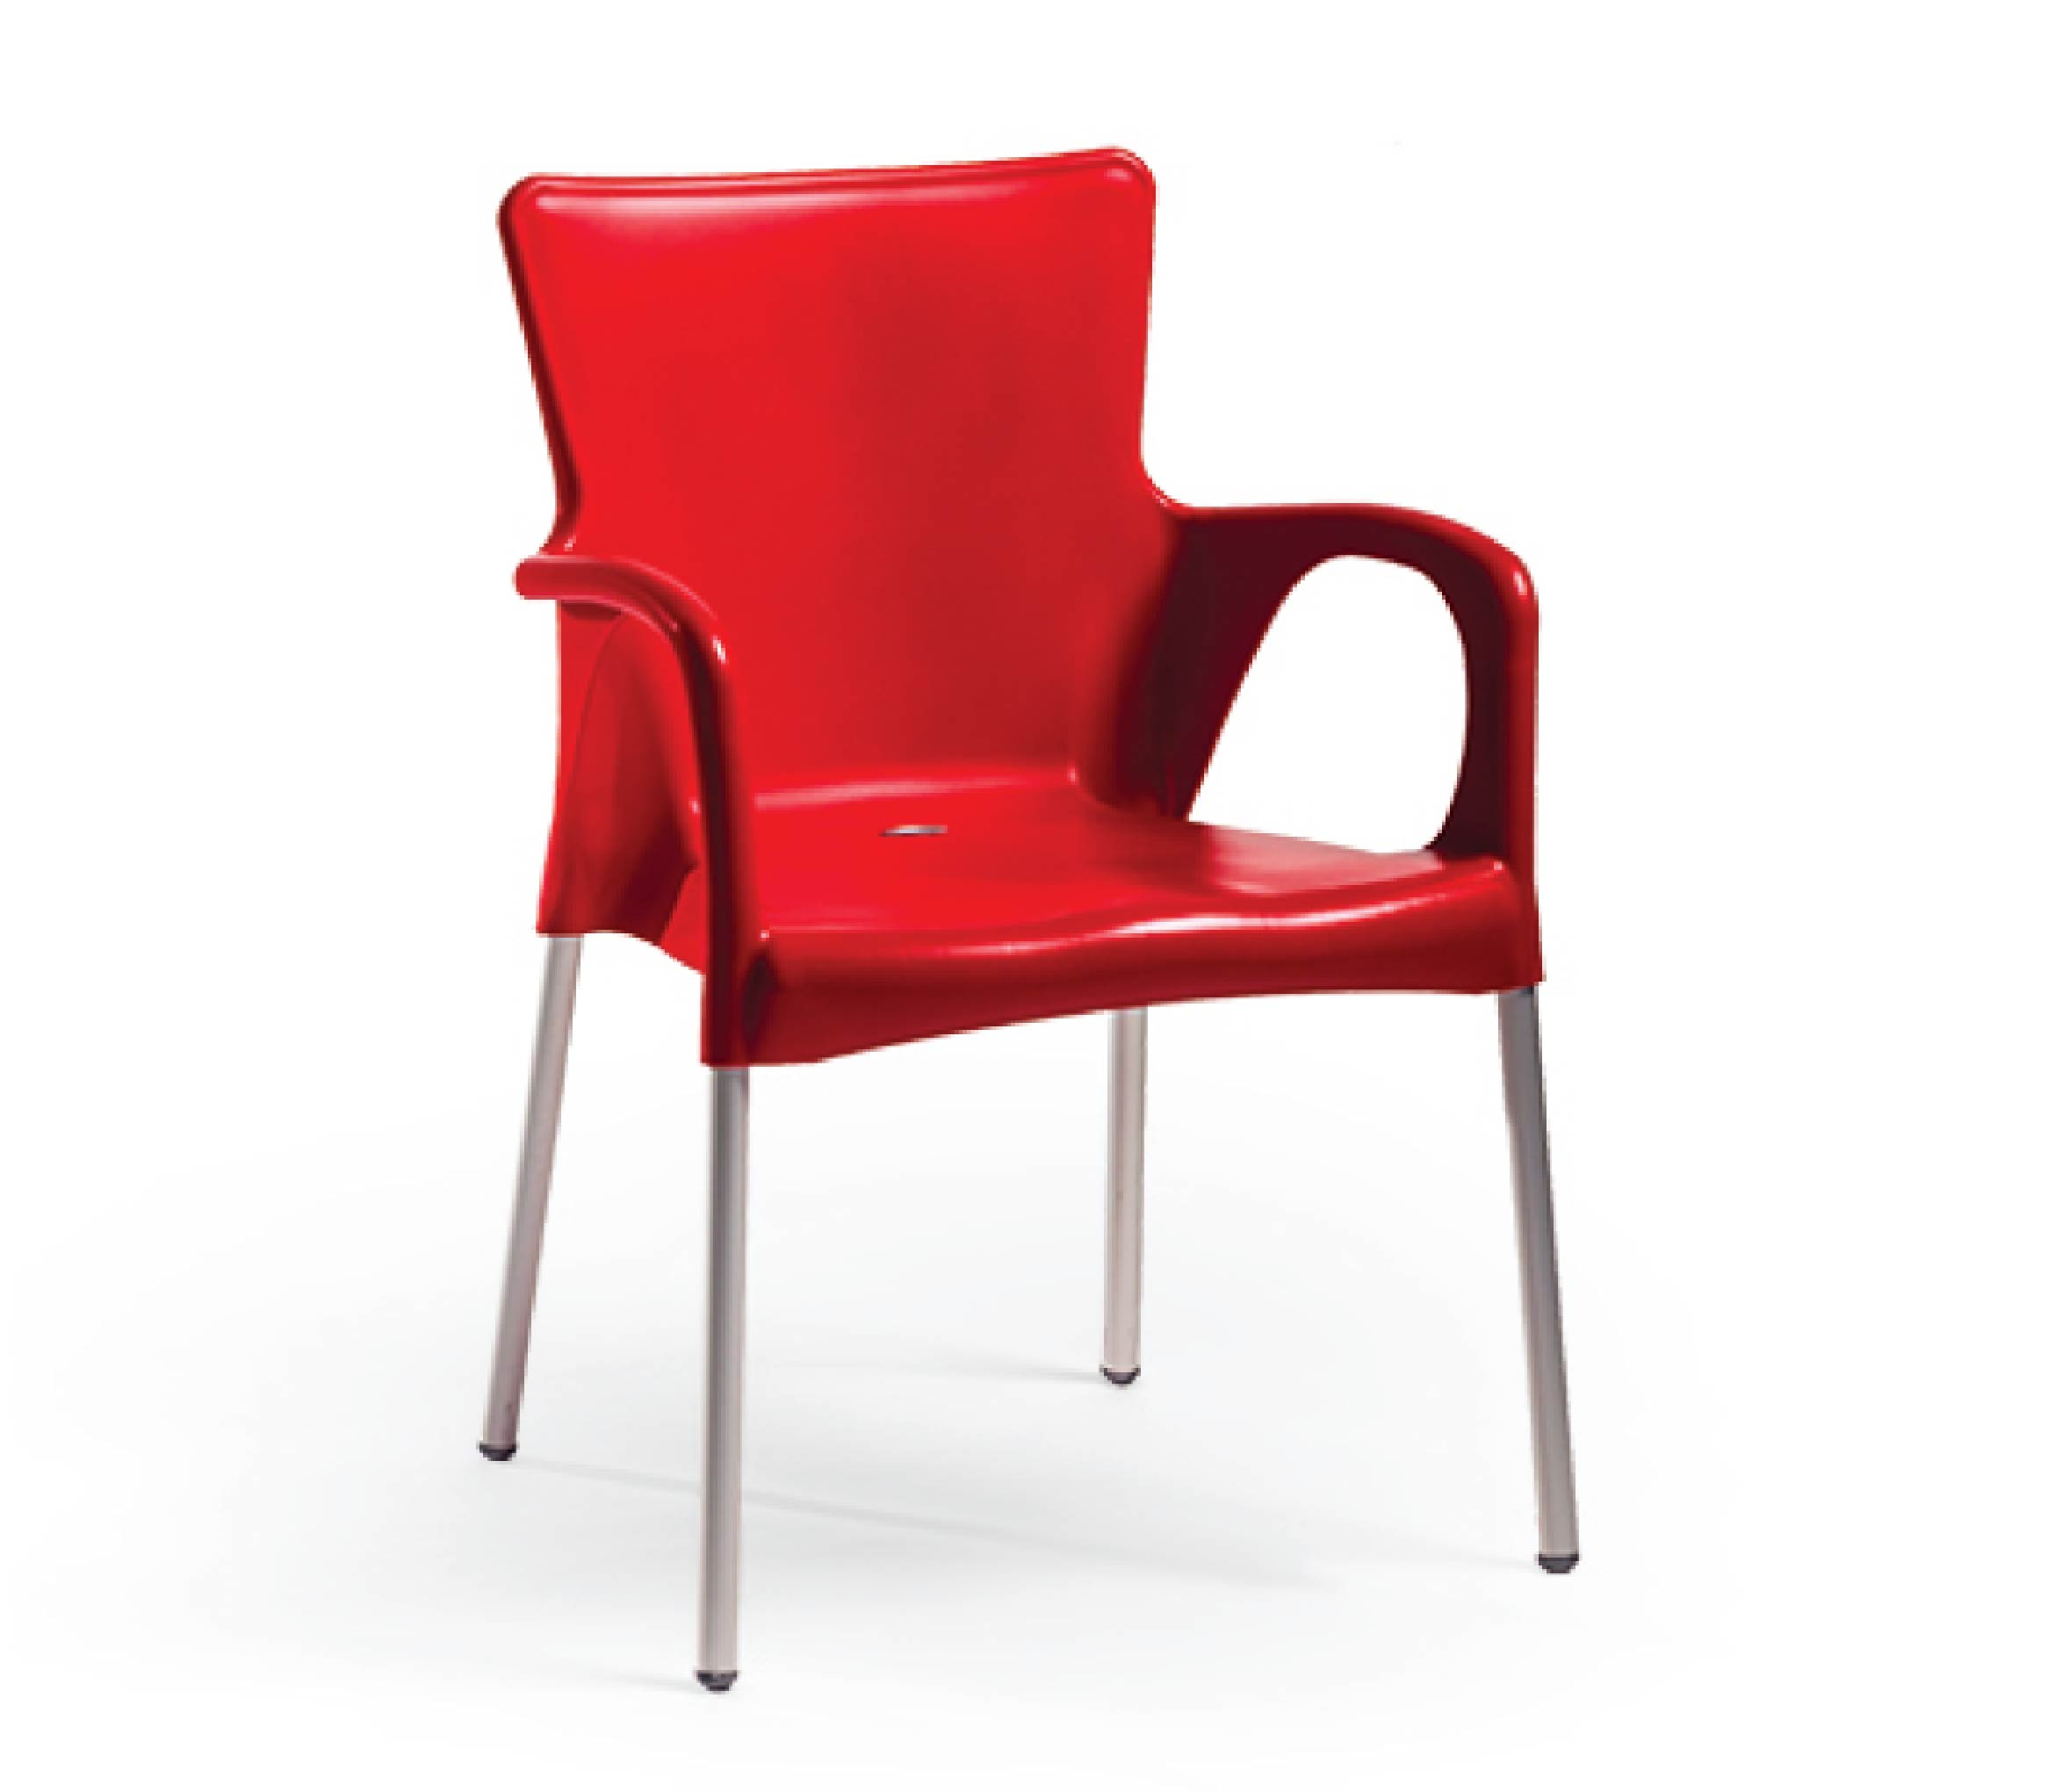 1_TENSAI_FURNITURE_ANA_RED_COLOR_PLASTIC_ARMCHAIR_white_background_400_001